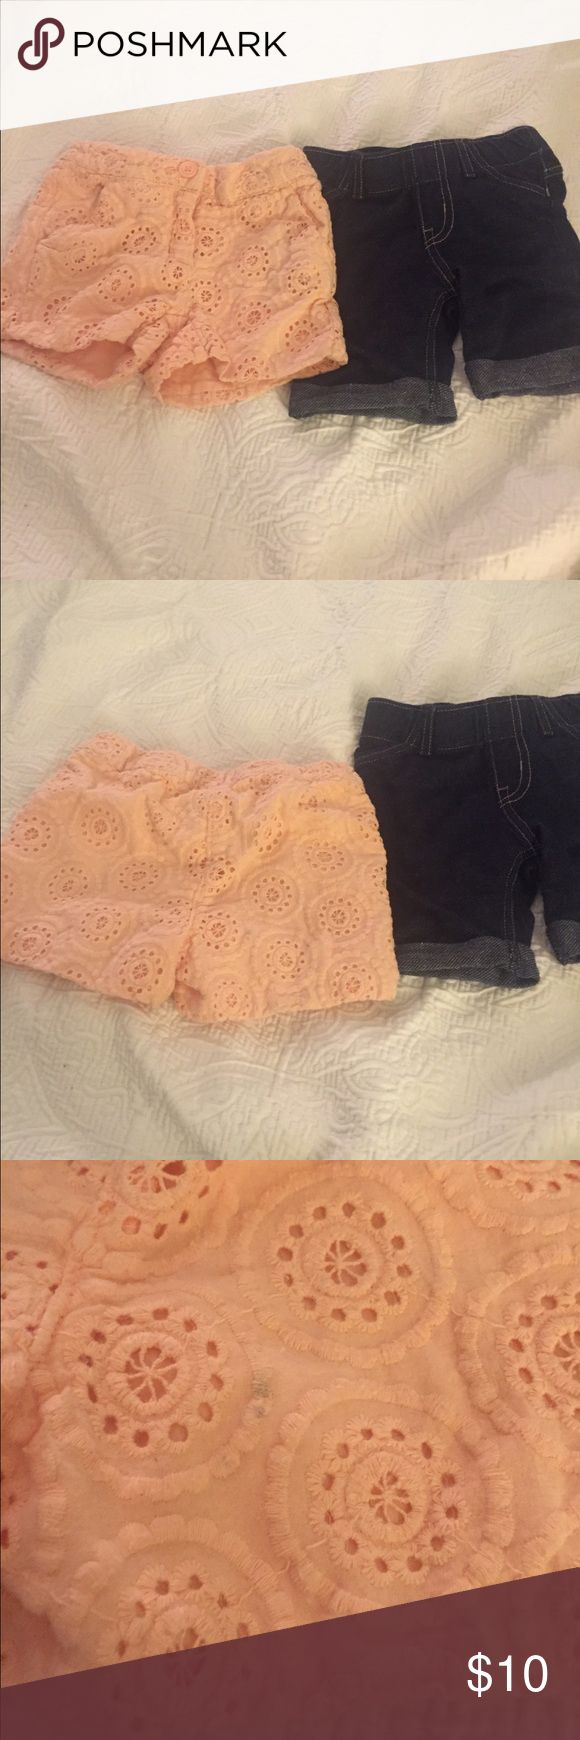 2 pairs of toddler shorts Peach shorts are Janie and Jack. The jean pair is Circo. Jeans are slightly longer shorts. Peach shorts have small stains that are pictured. Janie and Jack Bottoms Shorts